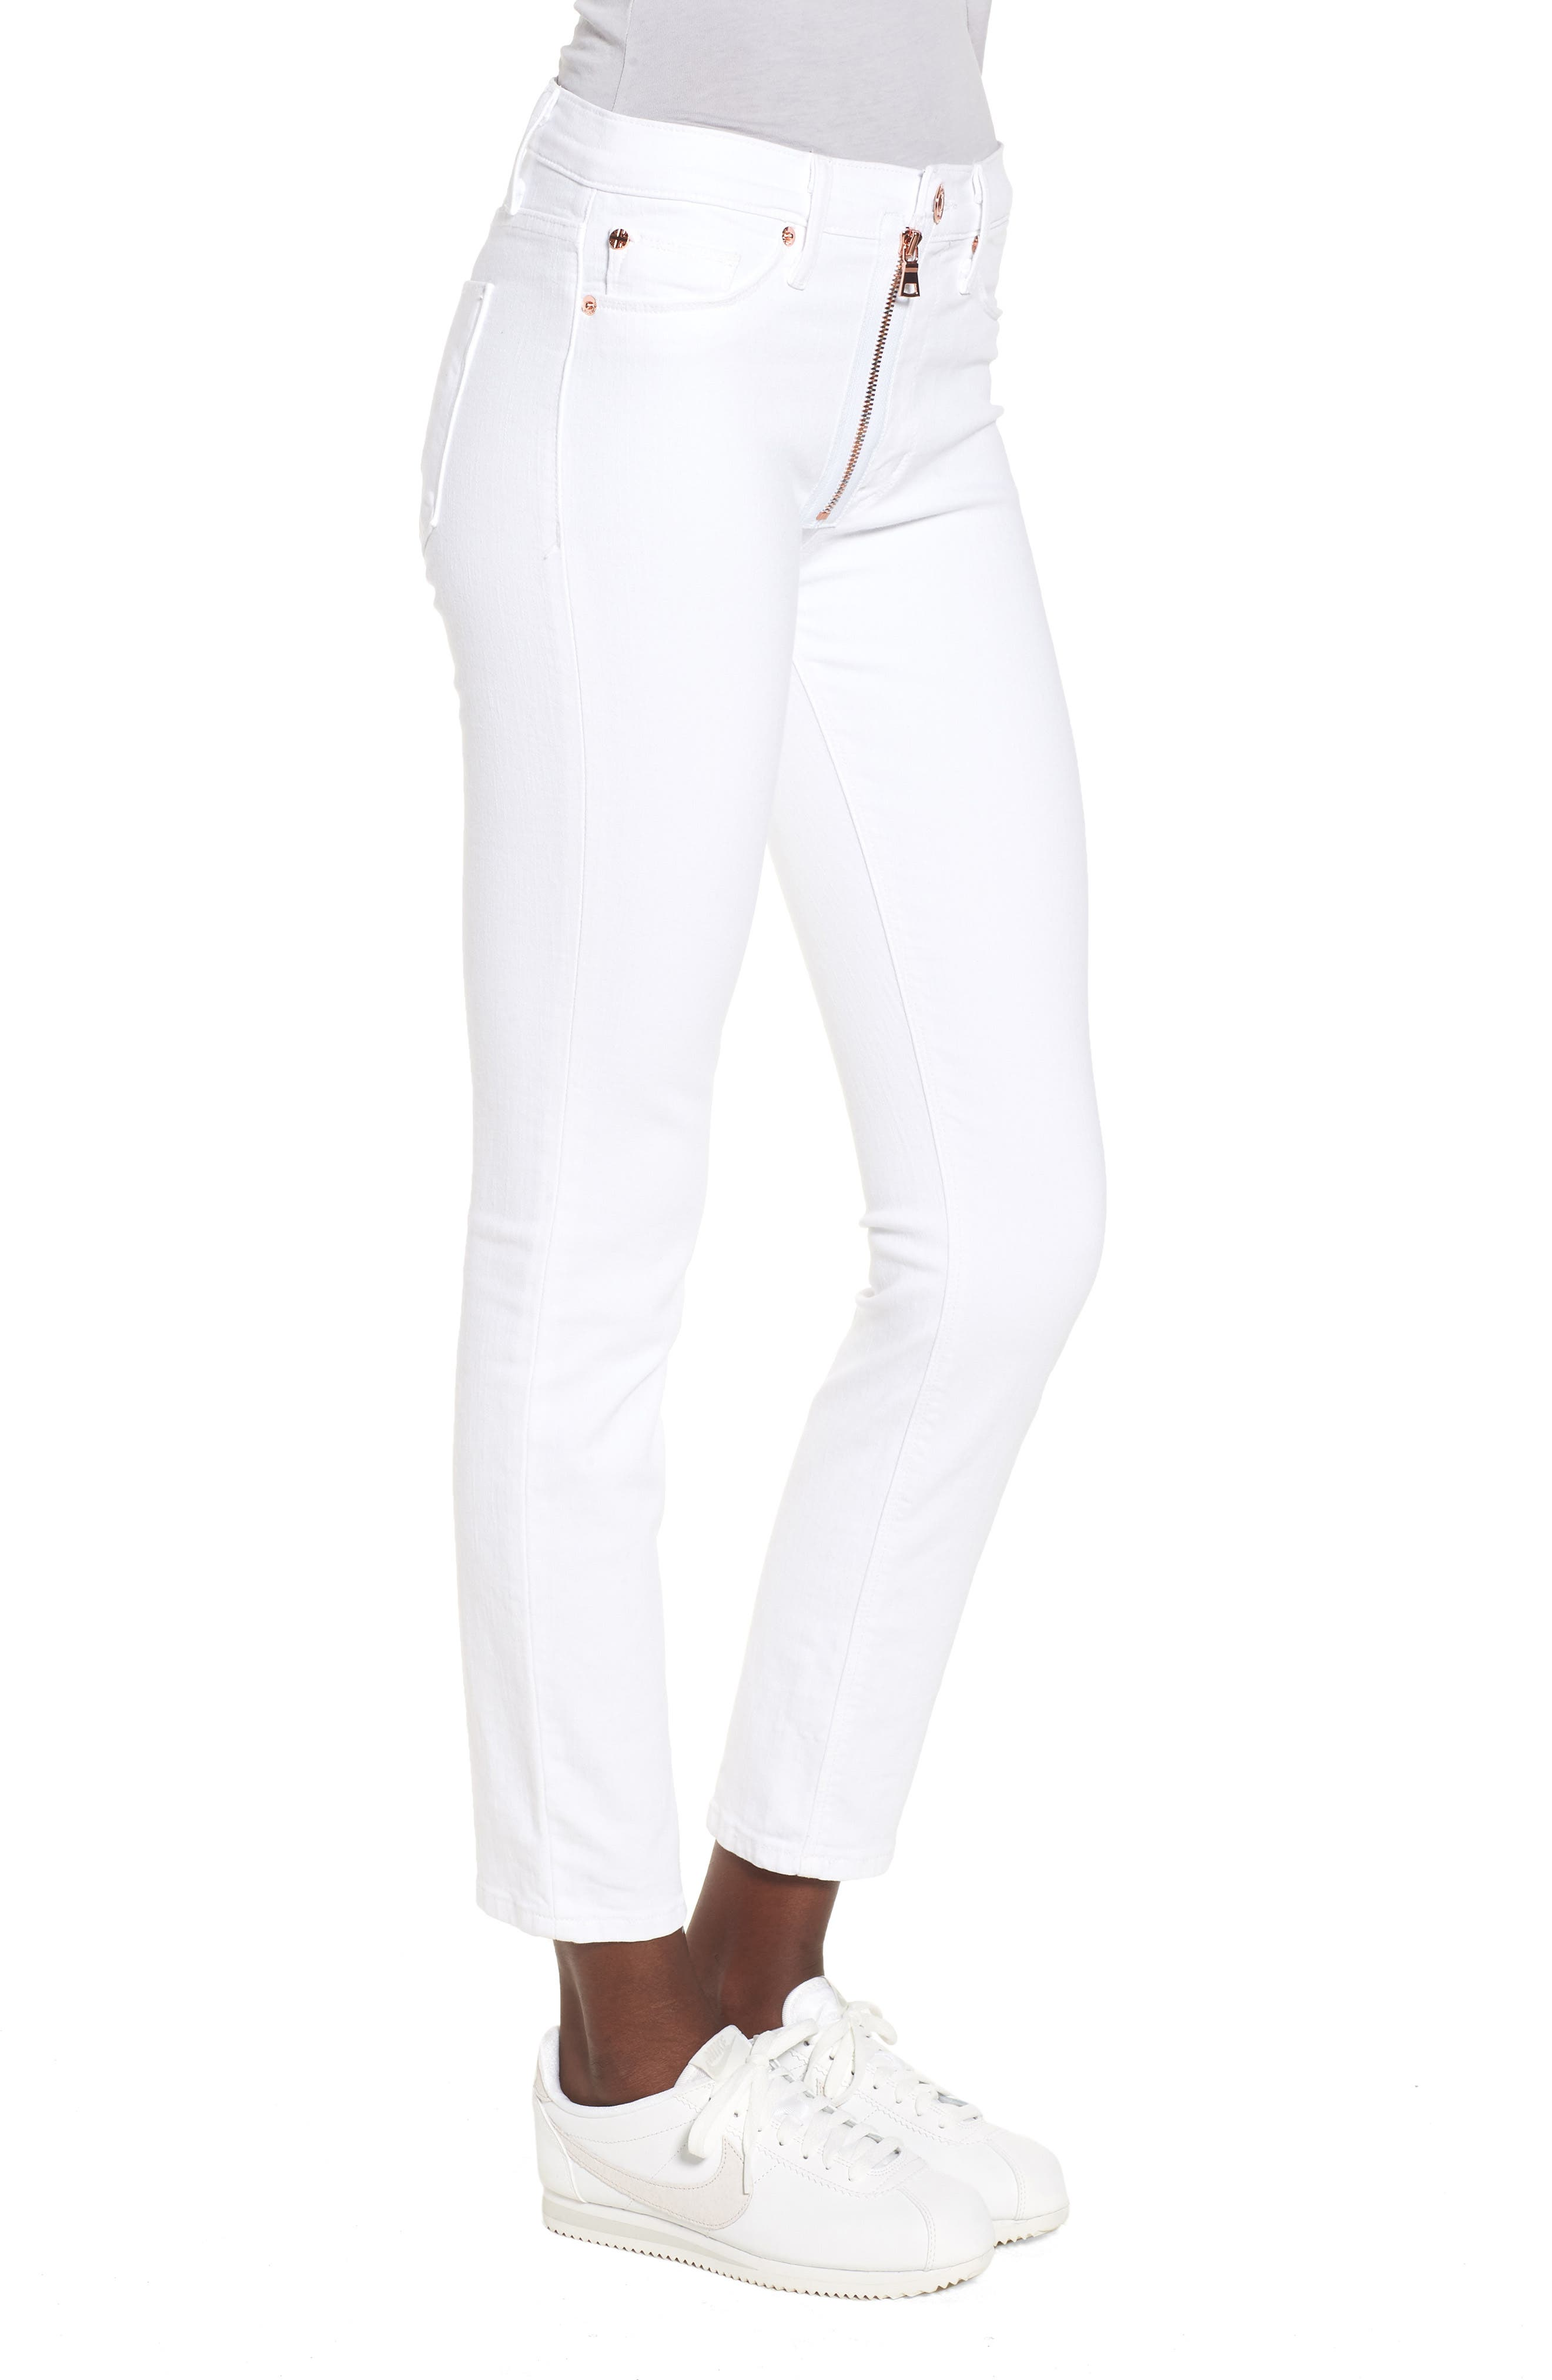 Barbara Exposed Zip High Waist Jeans,                             Alternate thumbnail 3, color,                             Optical White